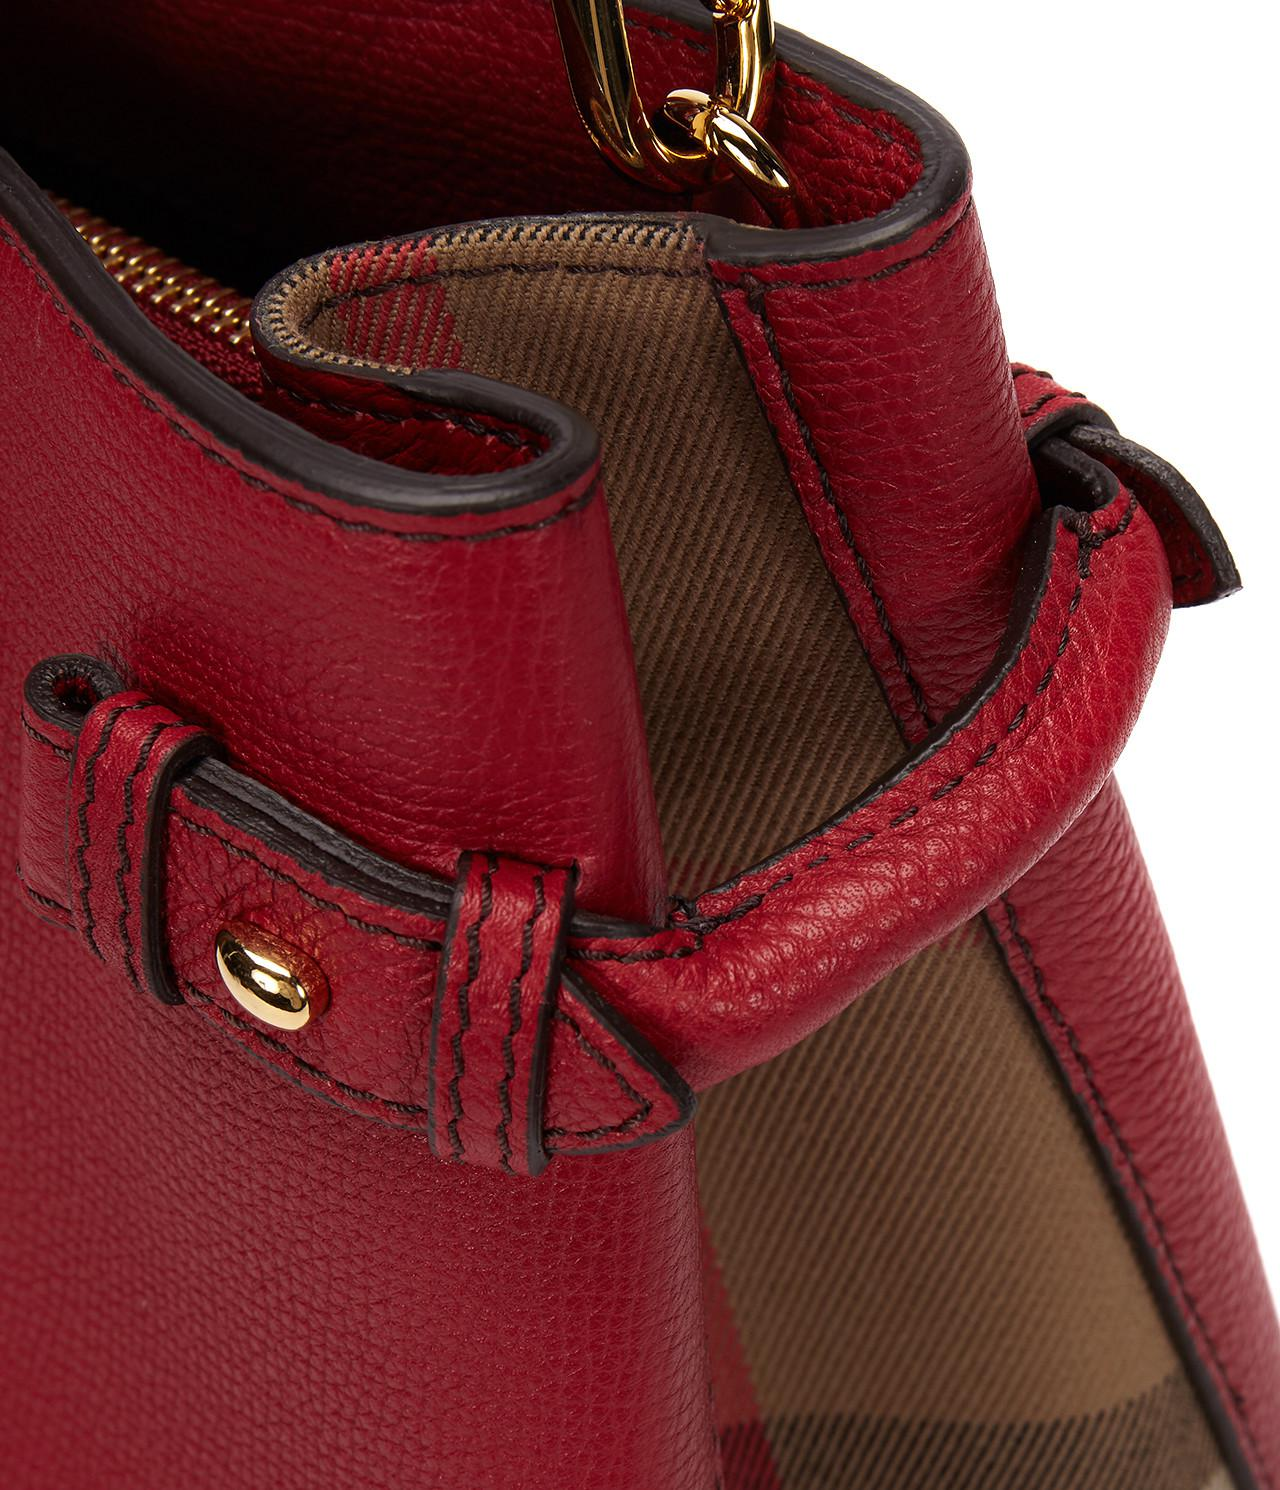 b49b585a4172 Burberry 17ss Women's House Check Medium Banner Bag Russet Red in ...